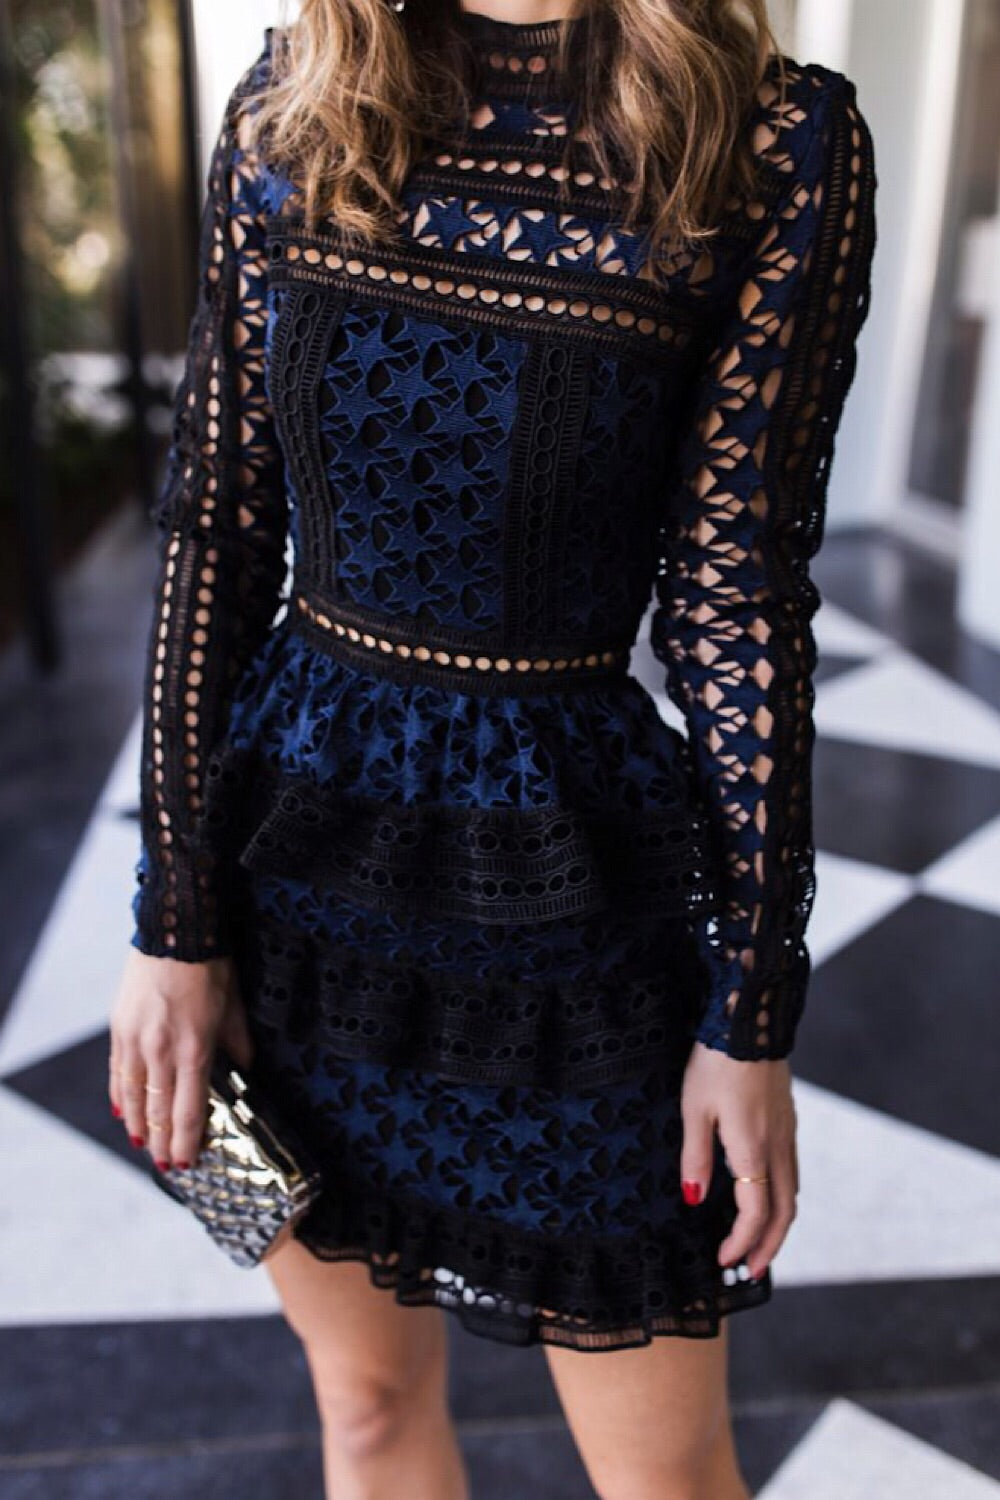 She Is A Star Dress Navy and Black